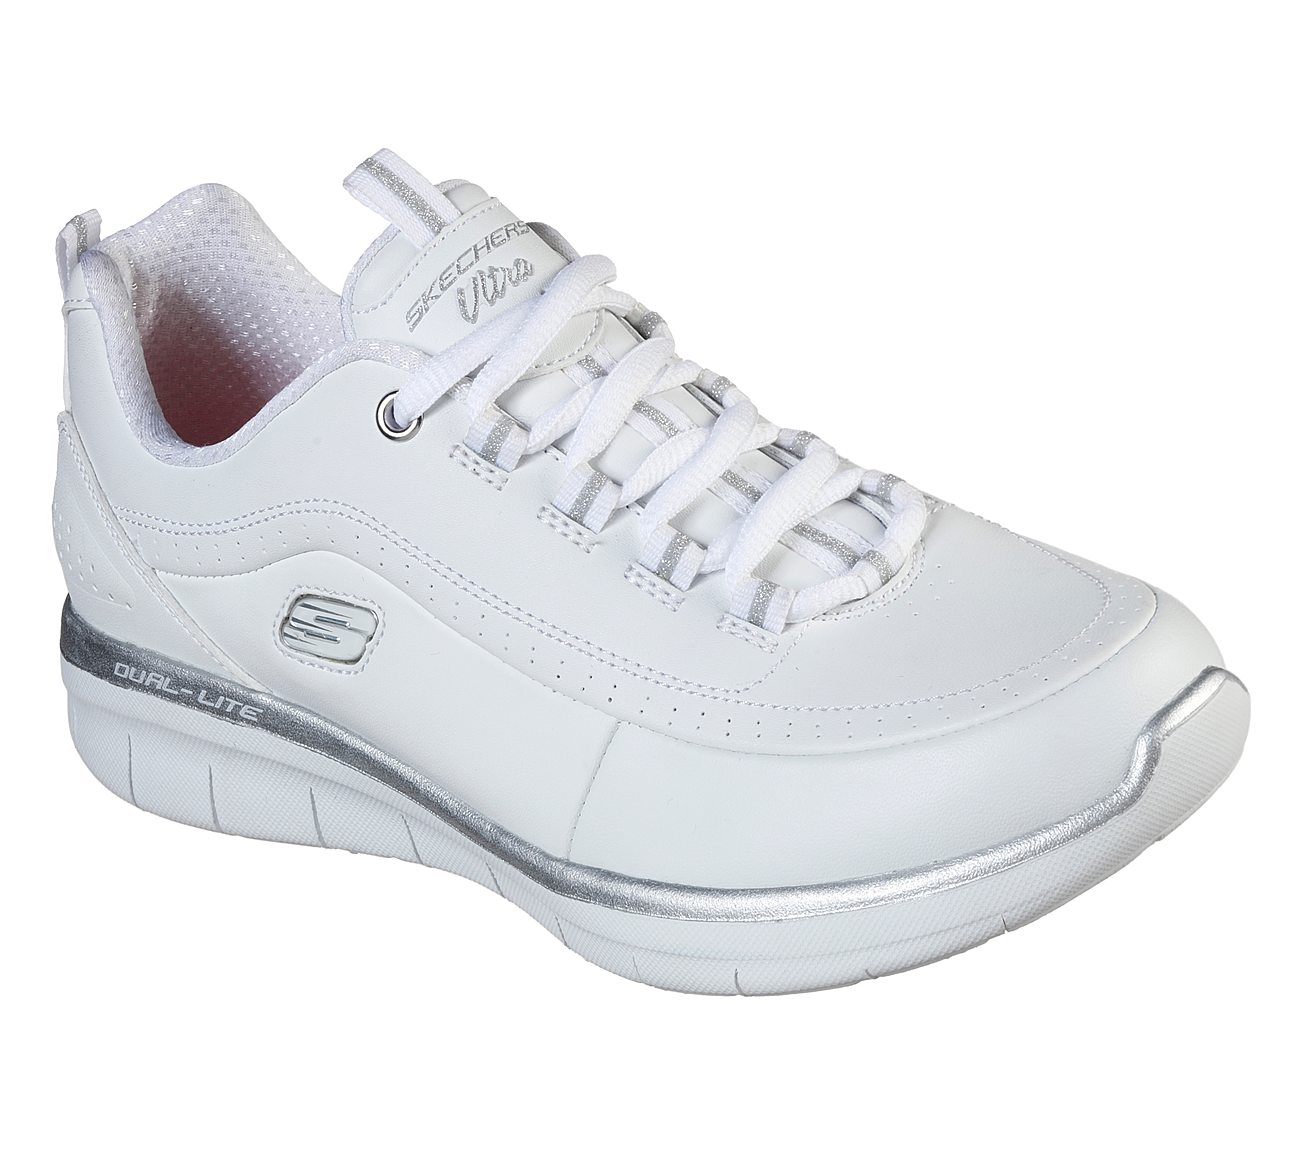 c45ac3ba3706 Buy SKECHERS Synergy 2.0 Sport Shoes only  70.00